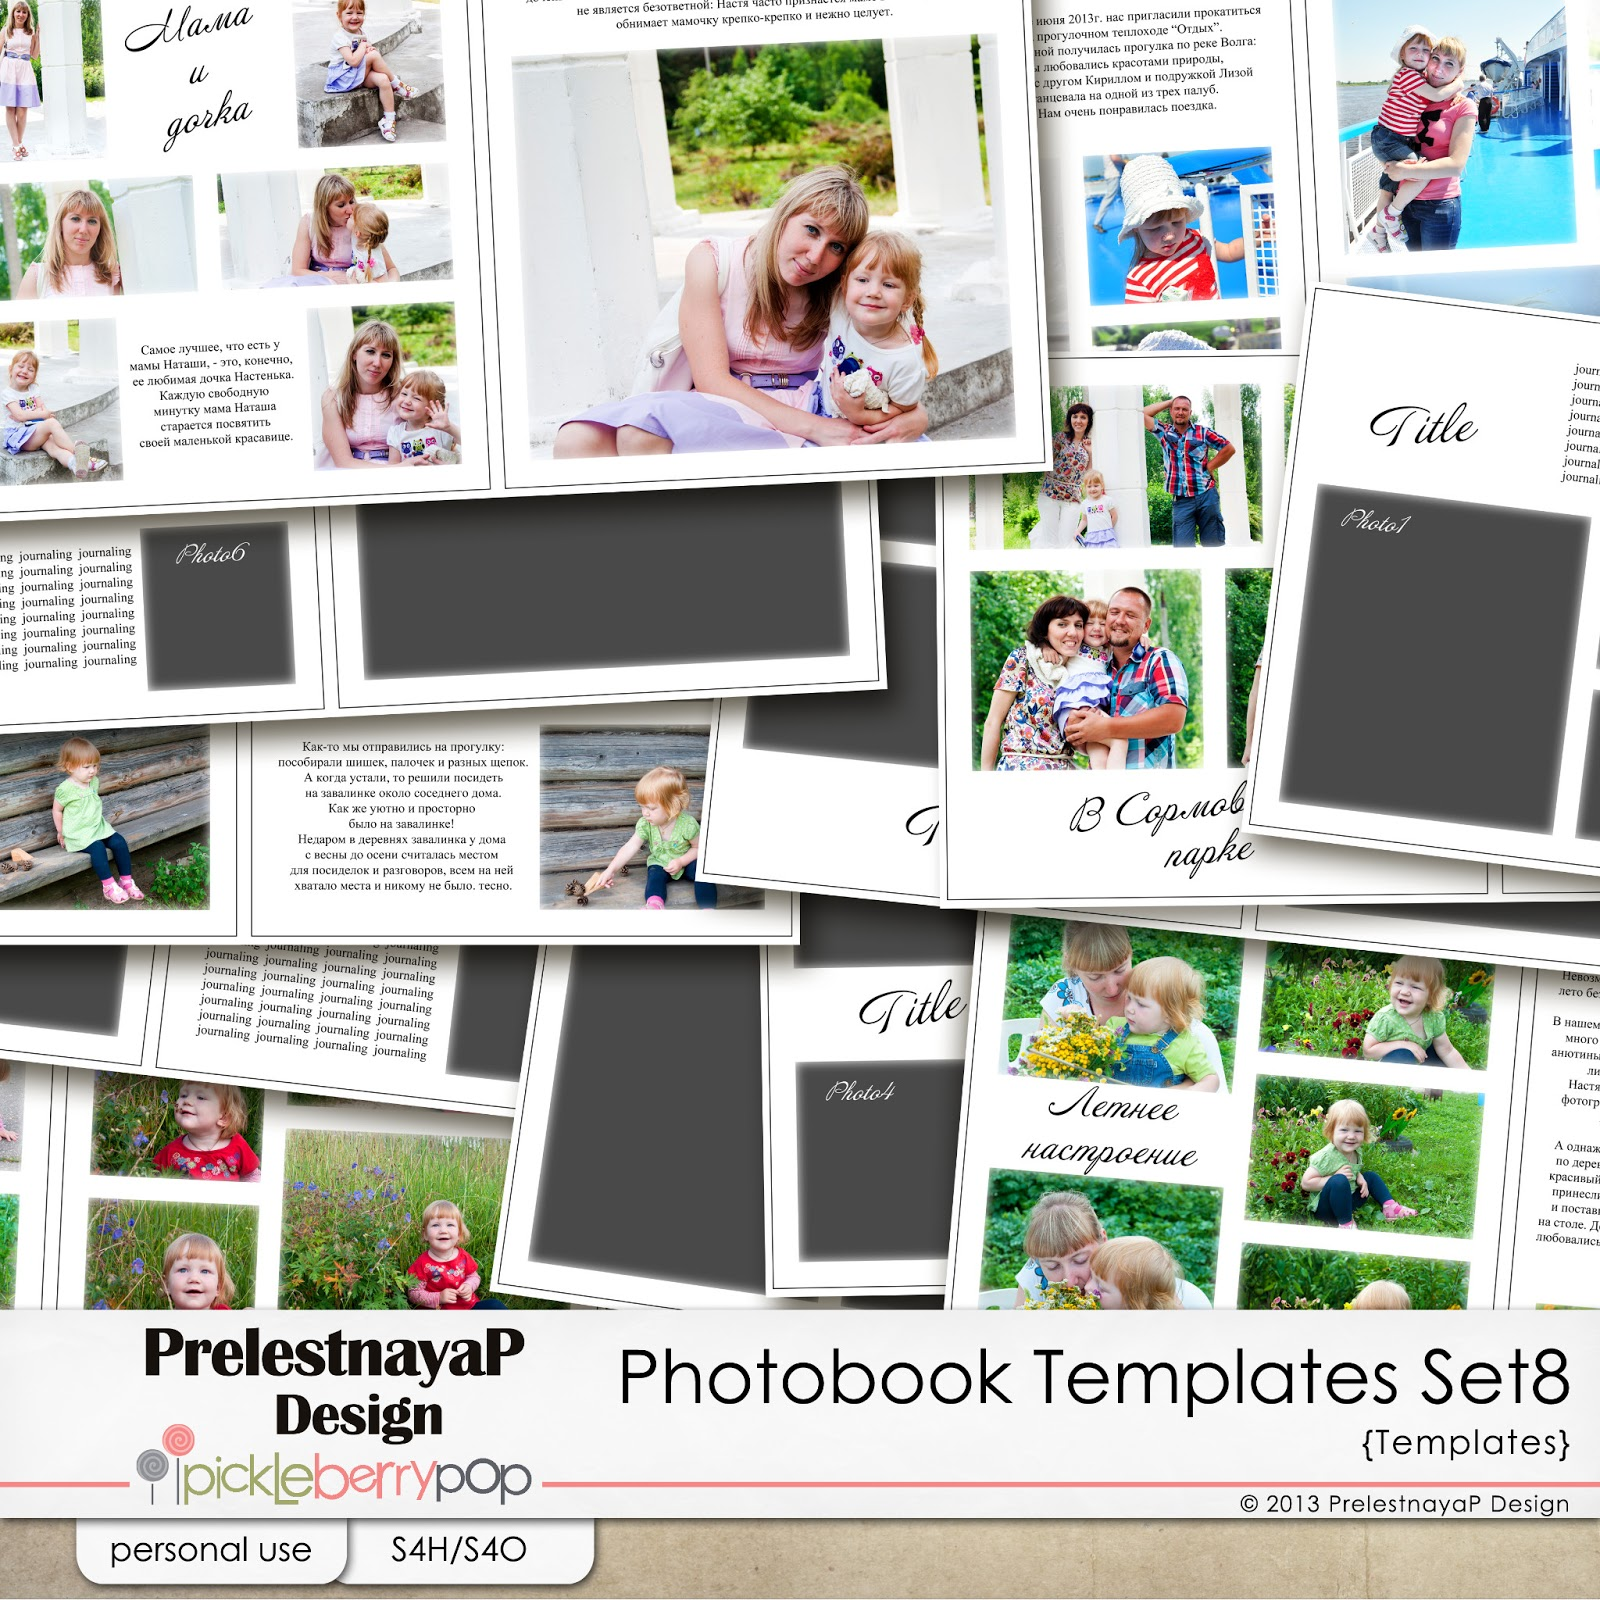 prelestnayap design new photobook templates set 8 20 off 4 formats. Black Bedroom Furniture Sets. Home Design Ideas